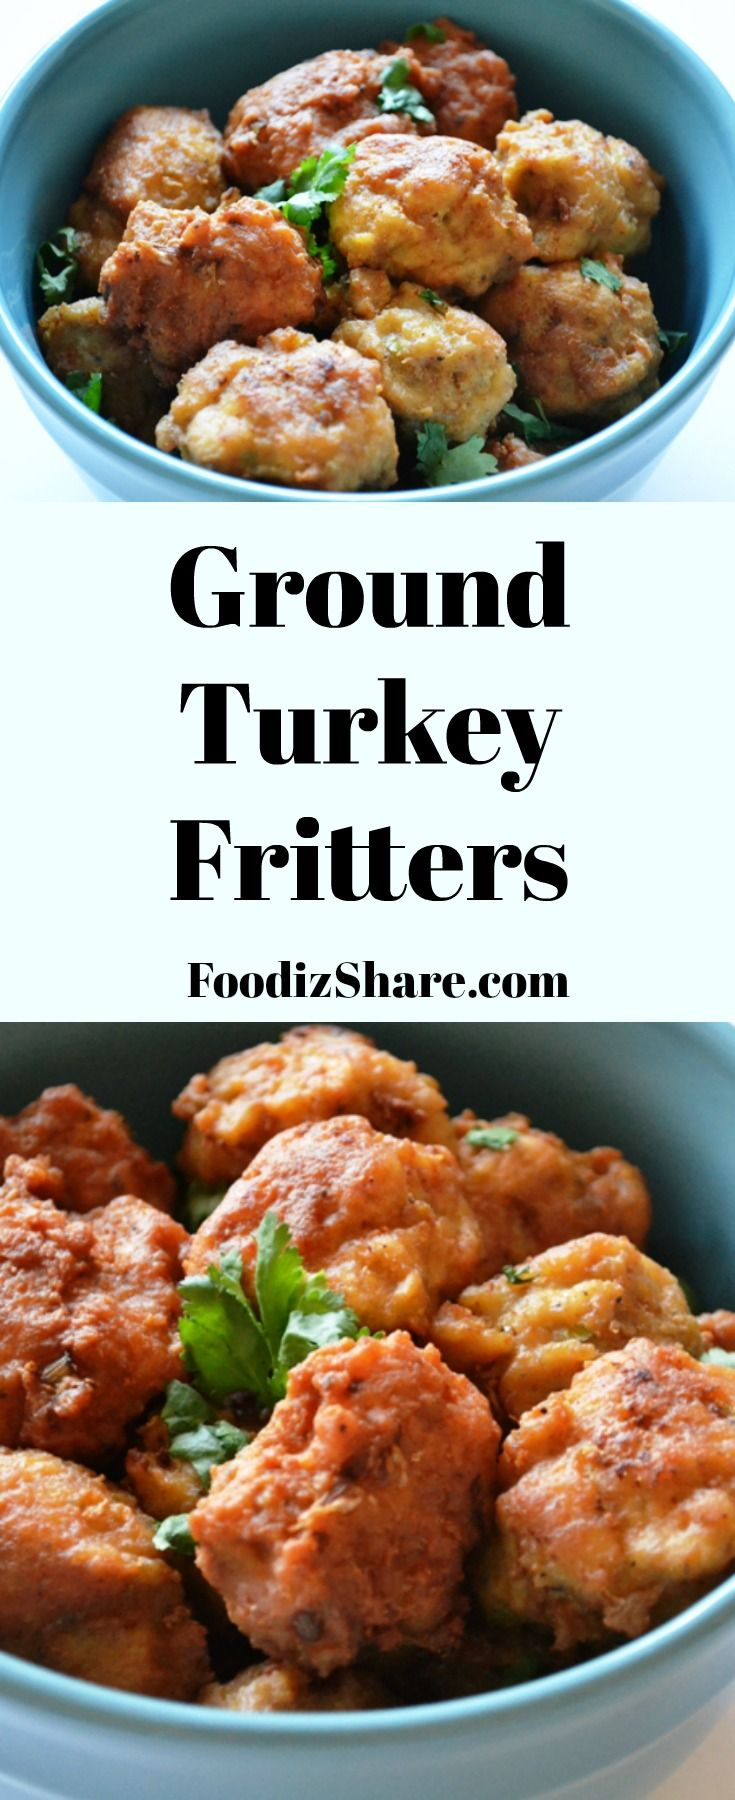 Highly flavorful turkey fritters great as an appetizer, snack or a side. #recipes #healthy #easyrecipe #comfortfood #snack